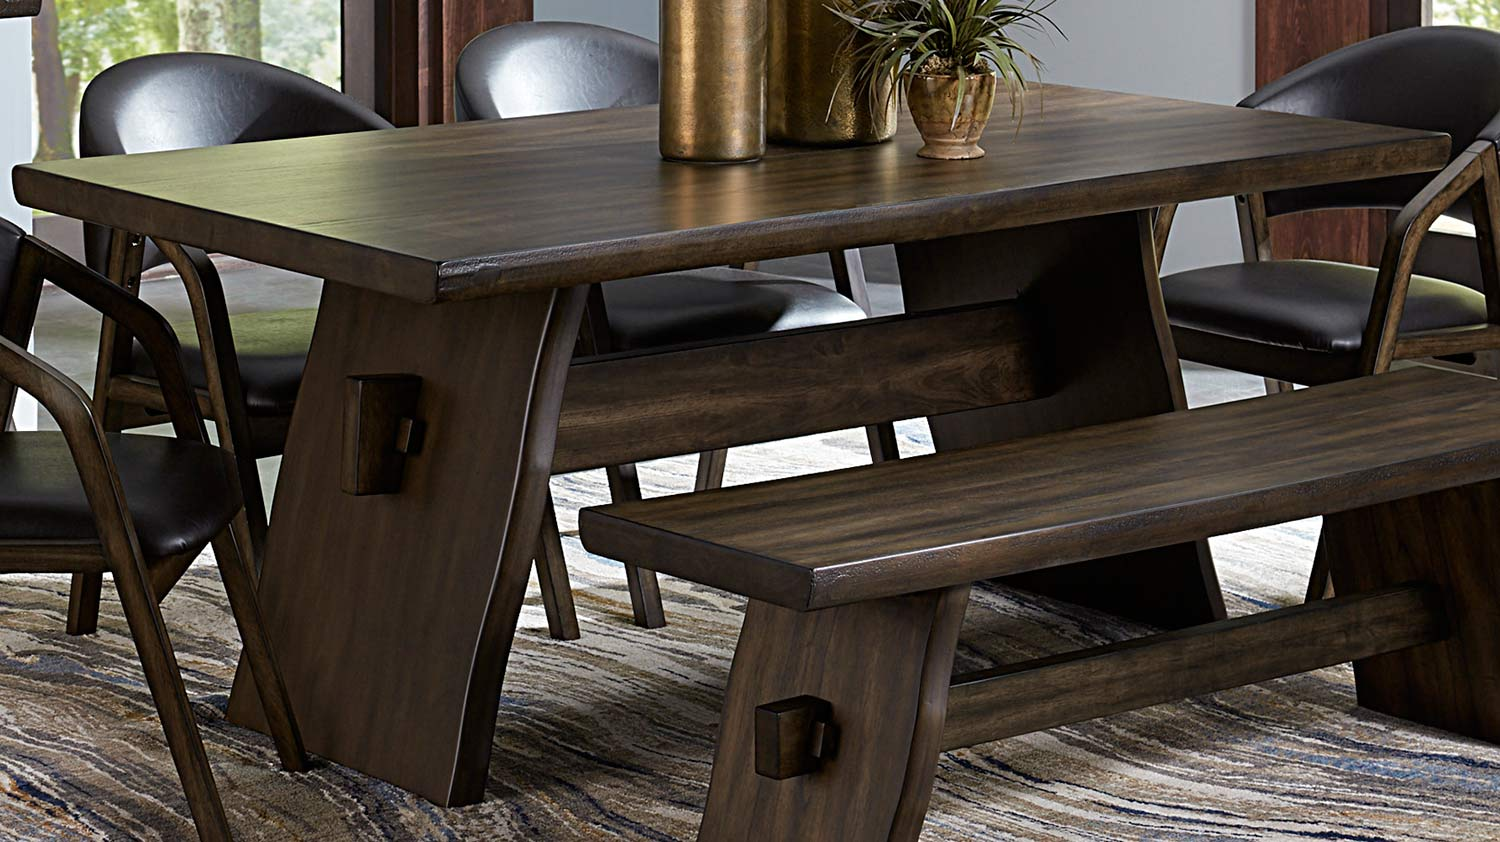 Homelegance Cabezon Dining Table - Rustic Brown